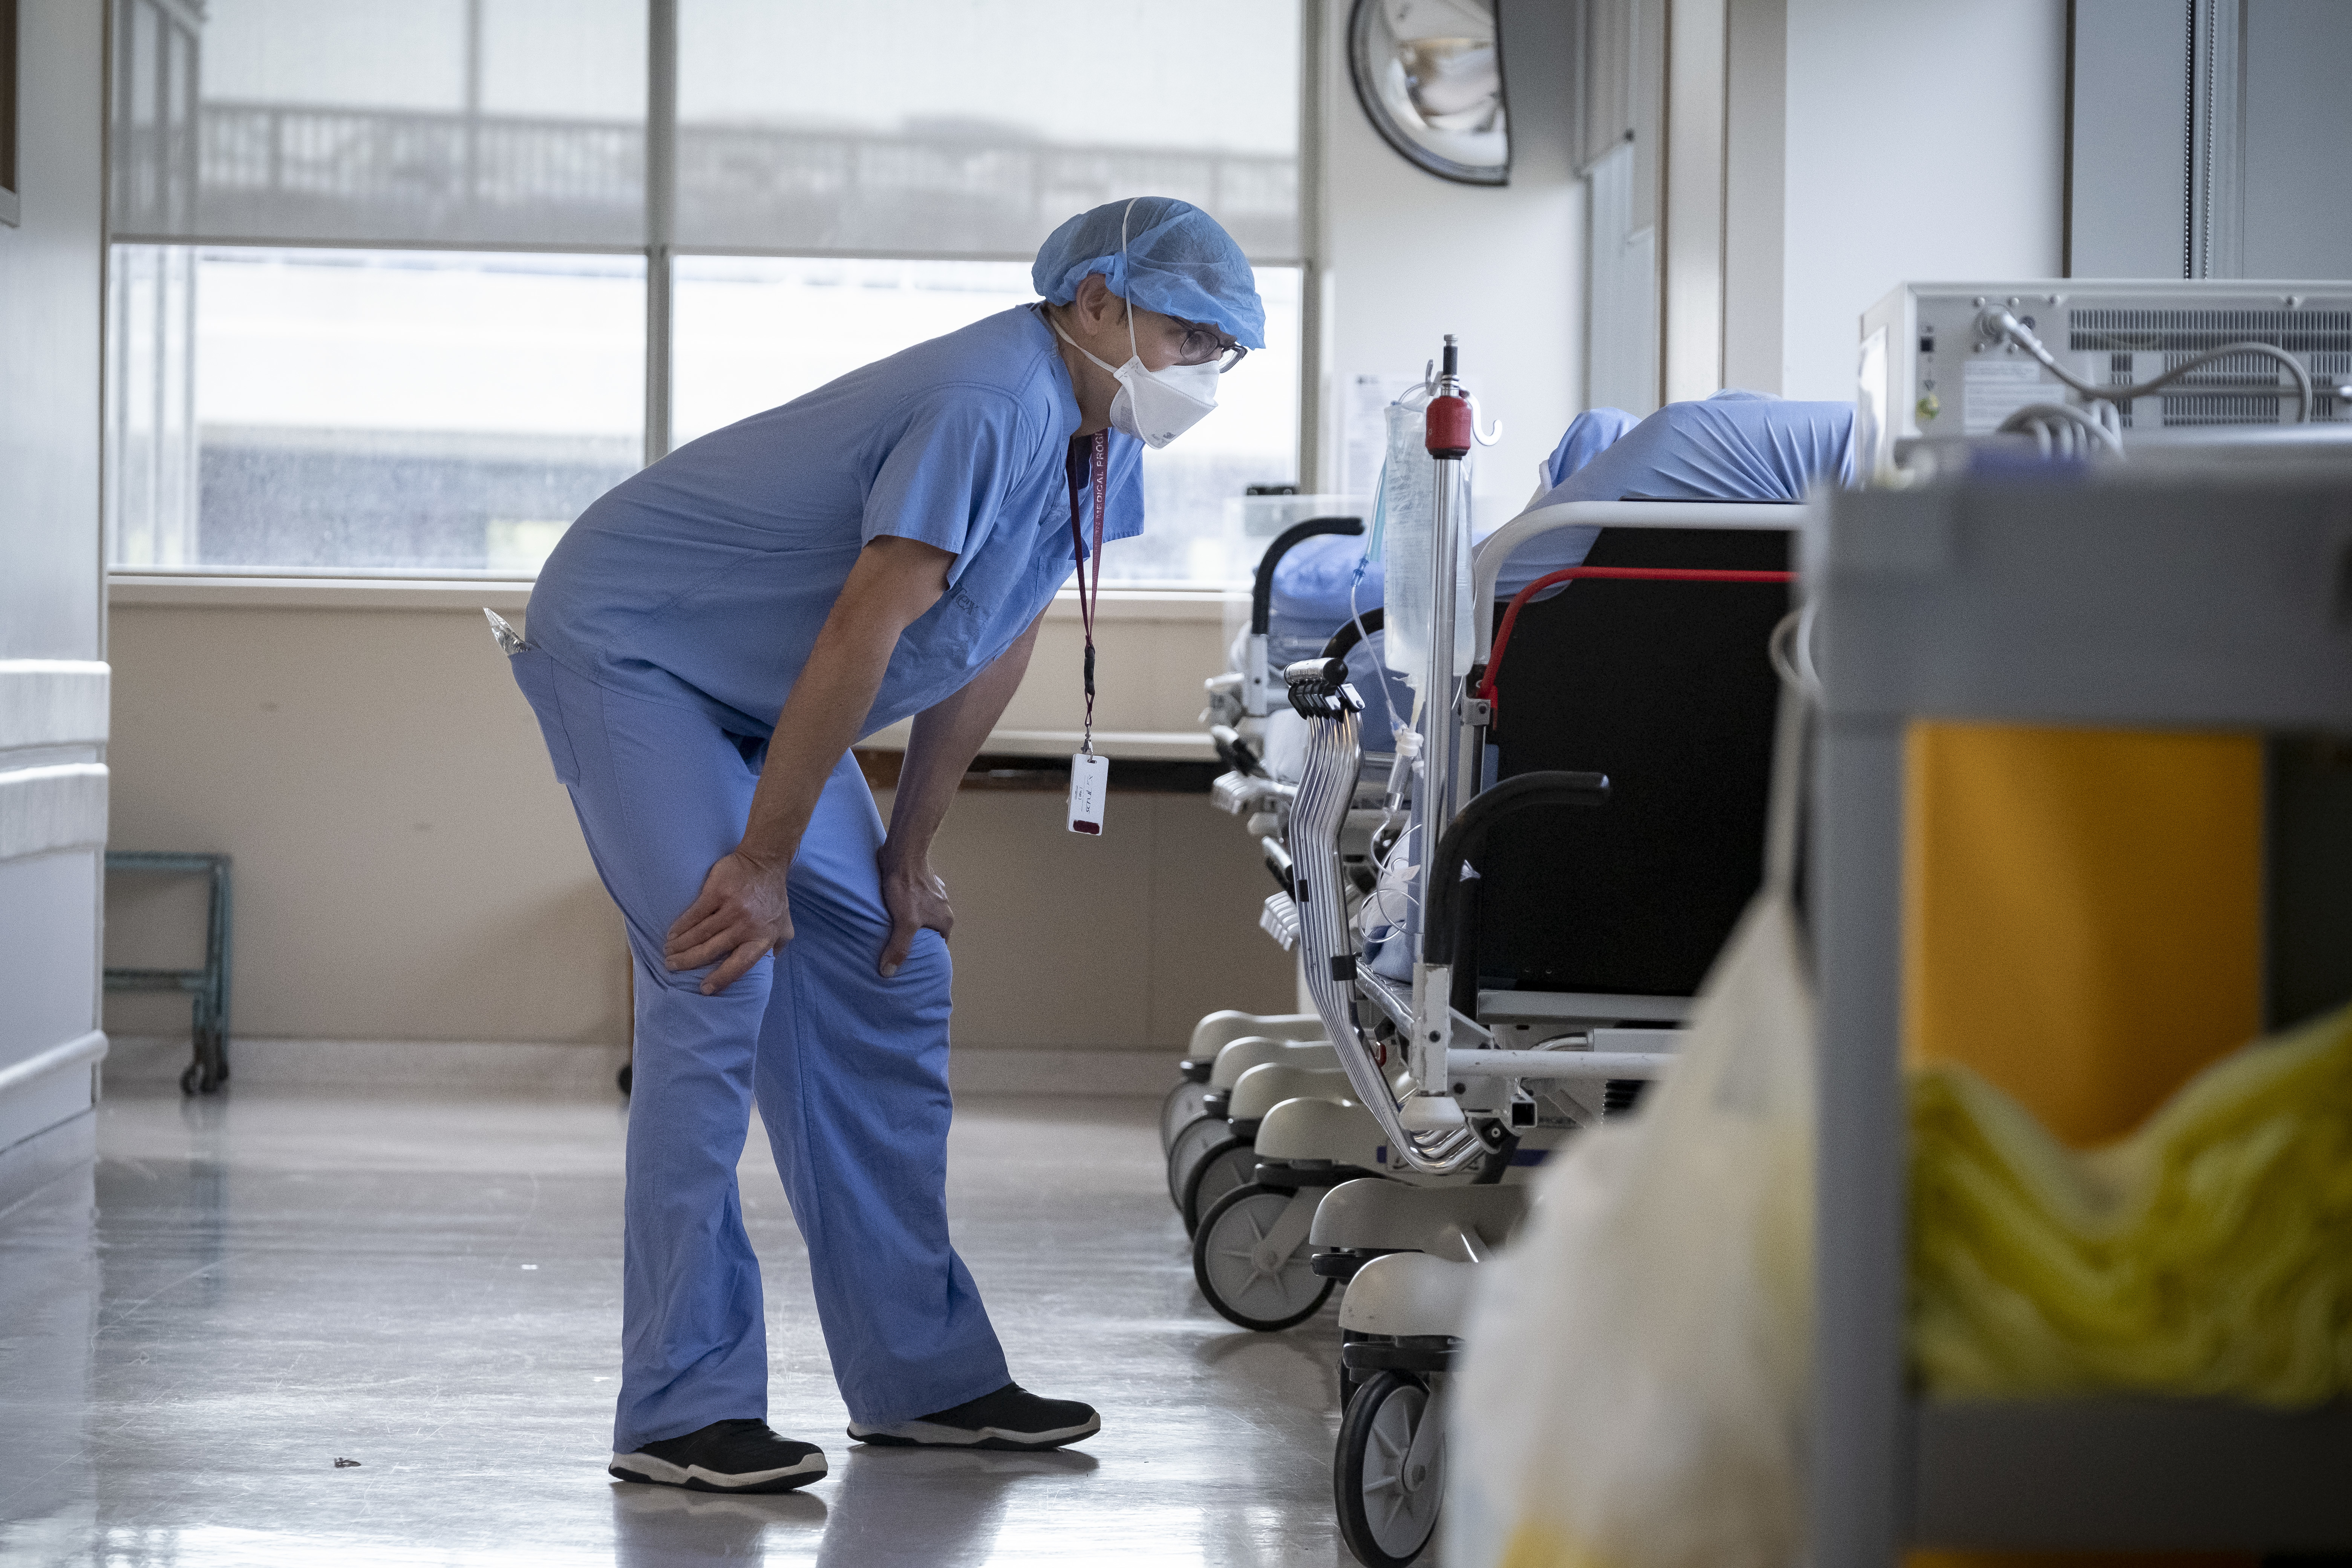 Anesthesiologist Rolf Gronas checks in on a patient. (Evan Mitsui/CBC)